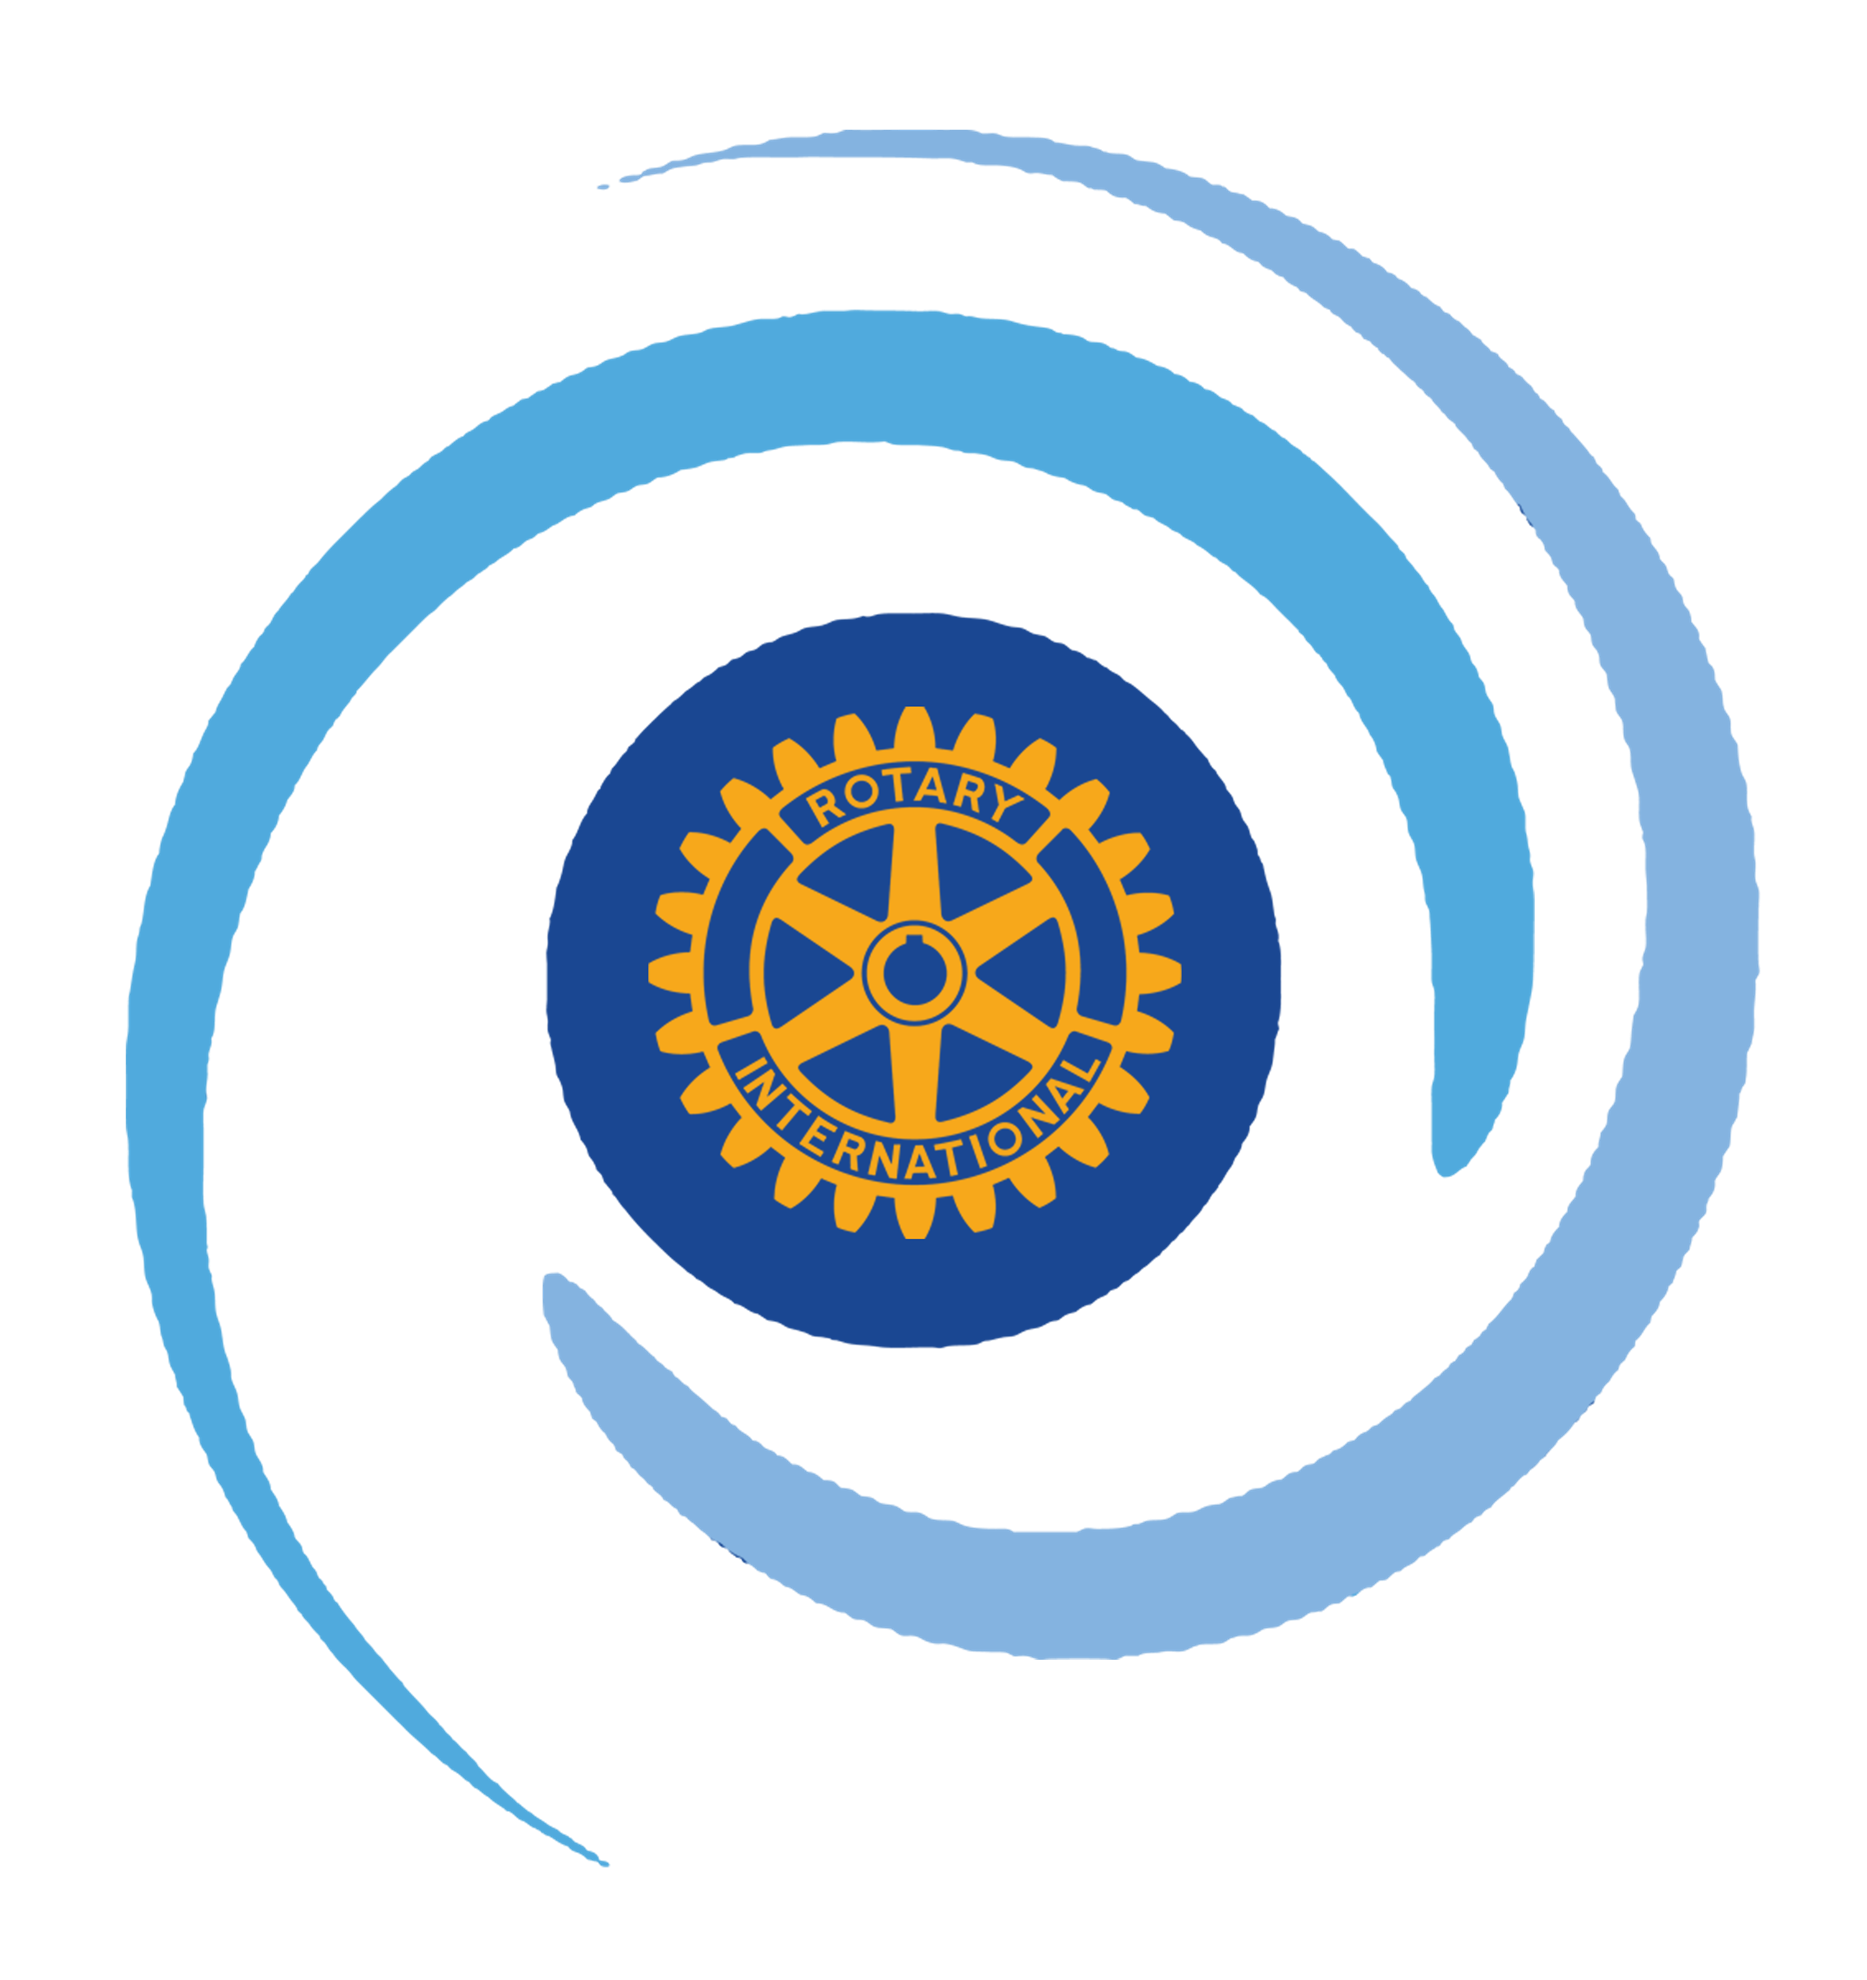 Rotary clip art district. Vision clipart logo